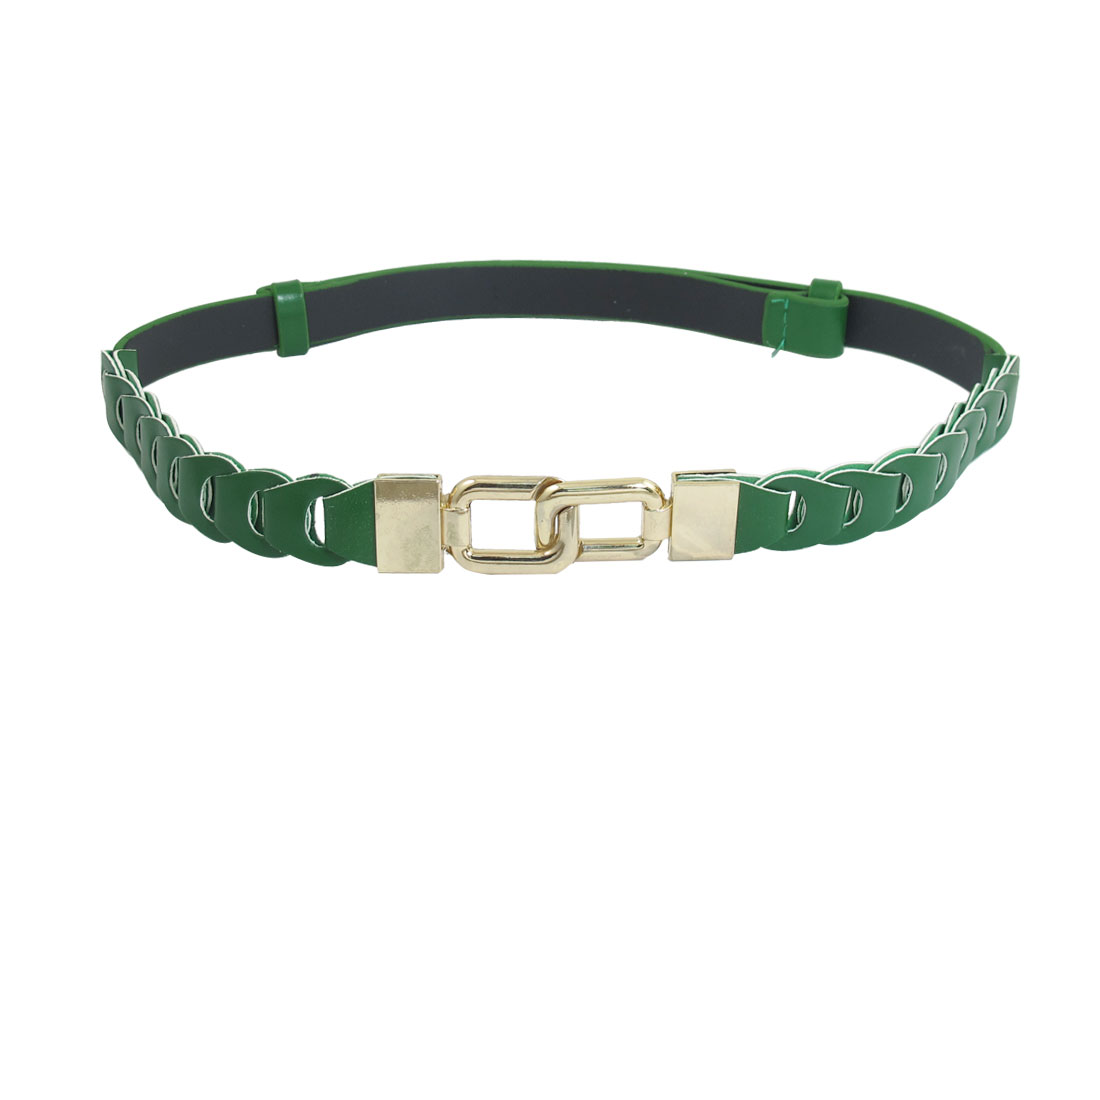 Metal Interlock Buckle Faux Leather Adjustable Slim Cinch Belt Green for Woman